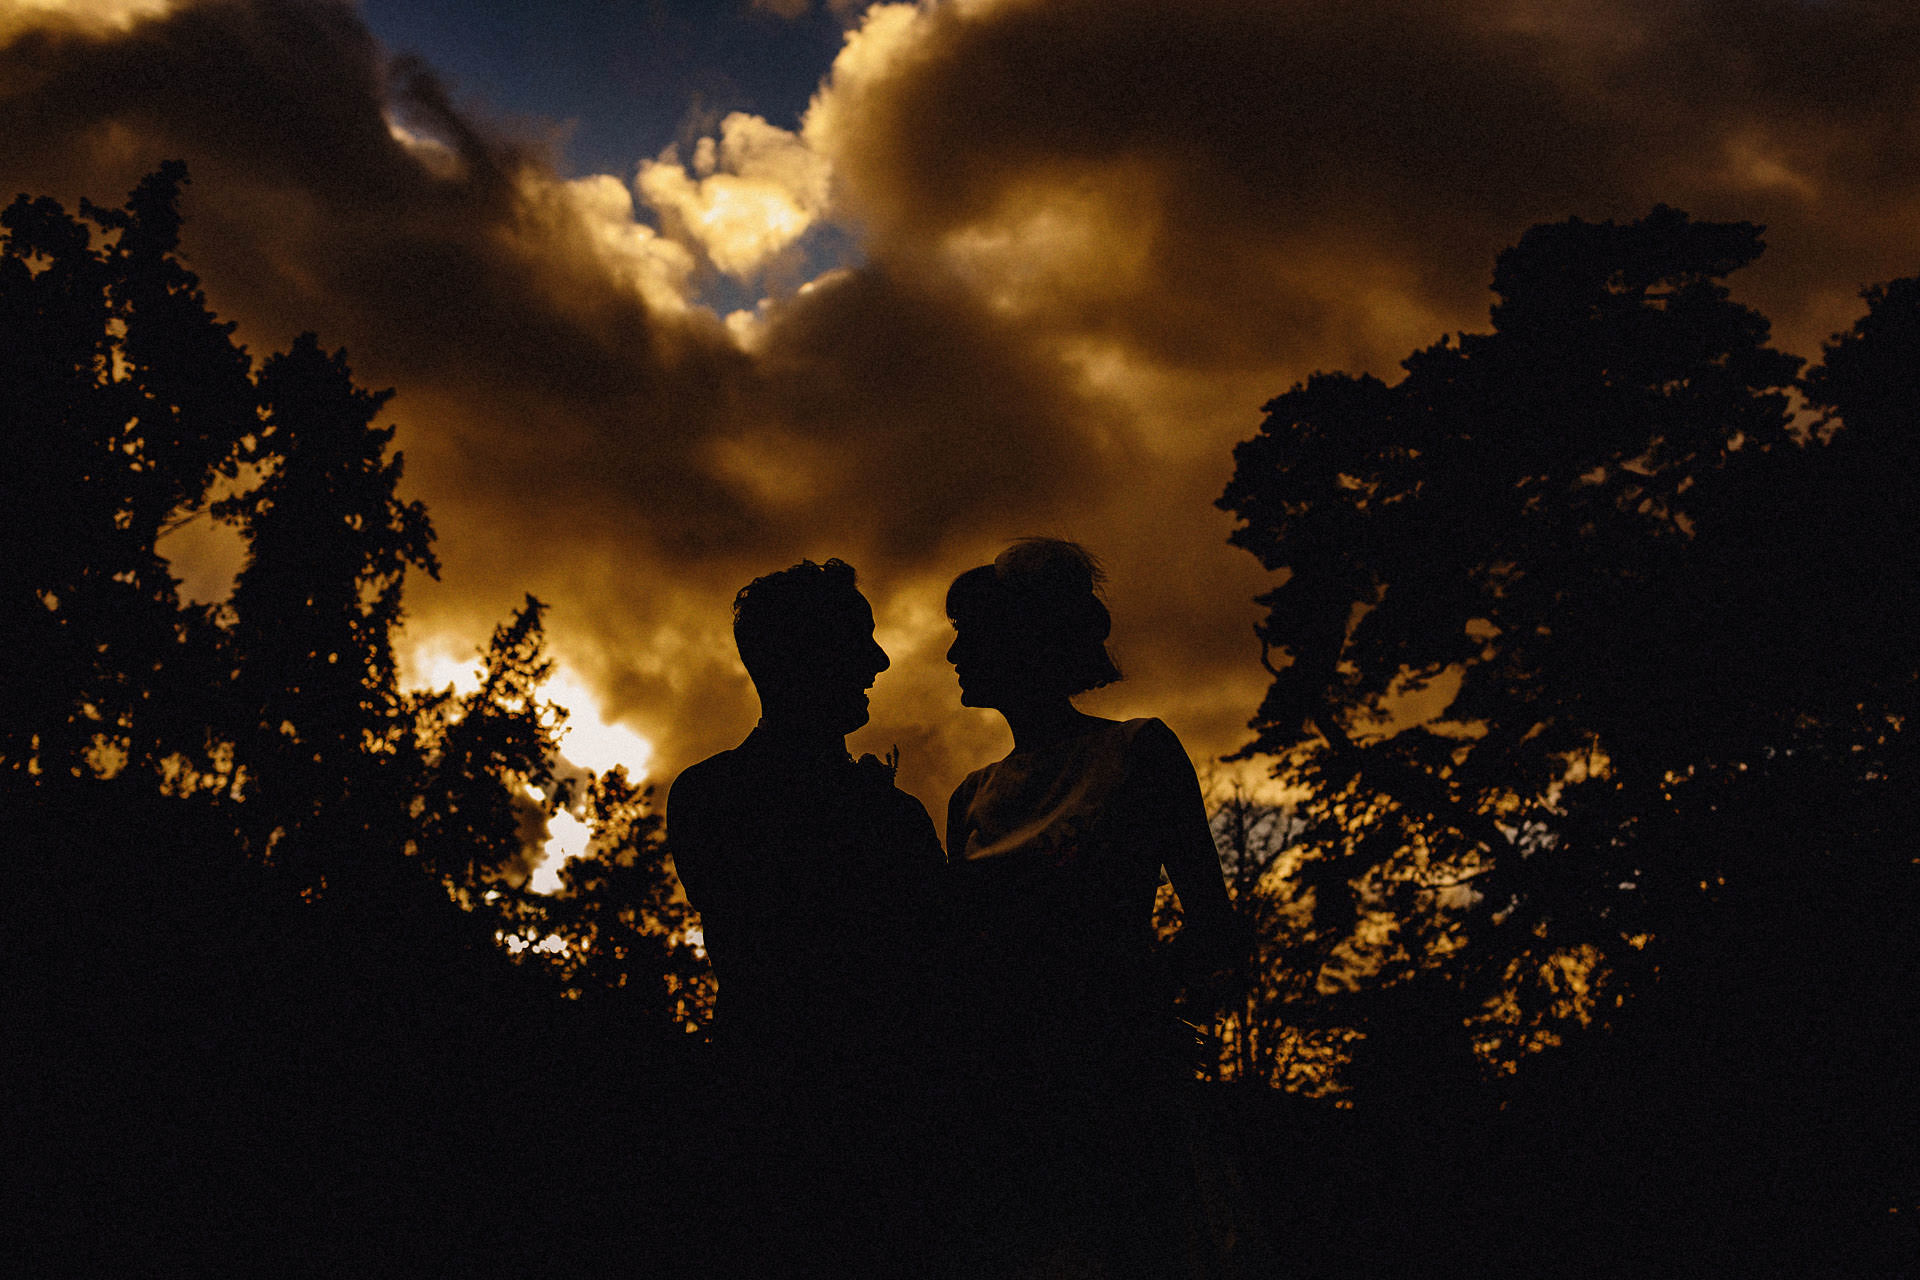 silhouette of the bride and groom outside the church